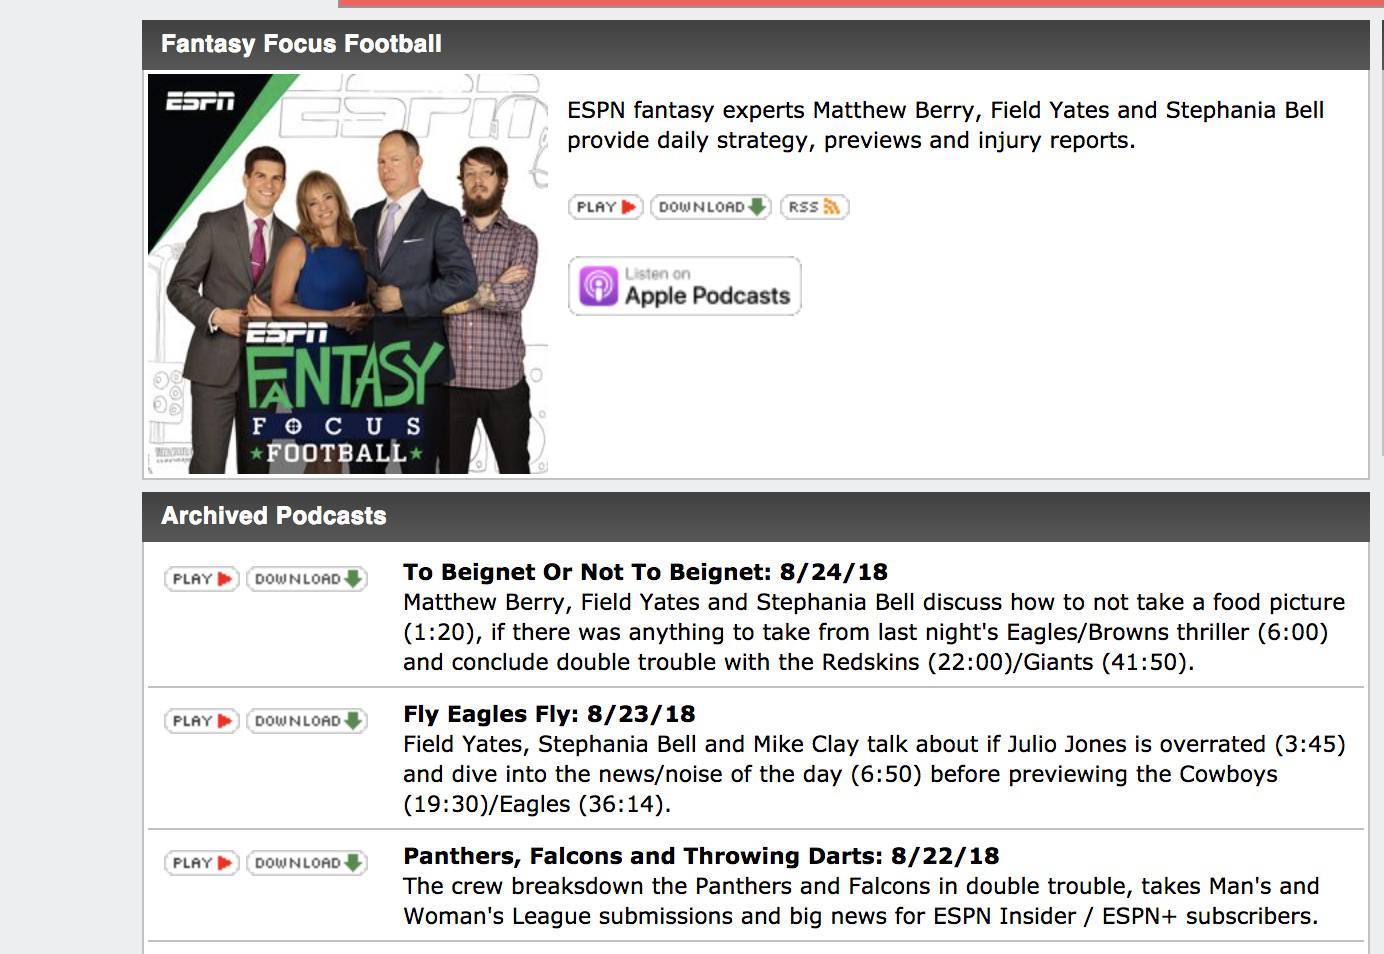 Screenshot of the Fantasy Focus Football podcast page on ESPN's website.